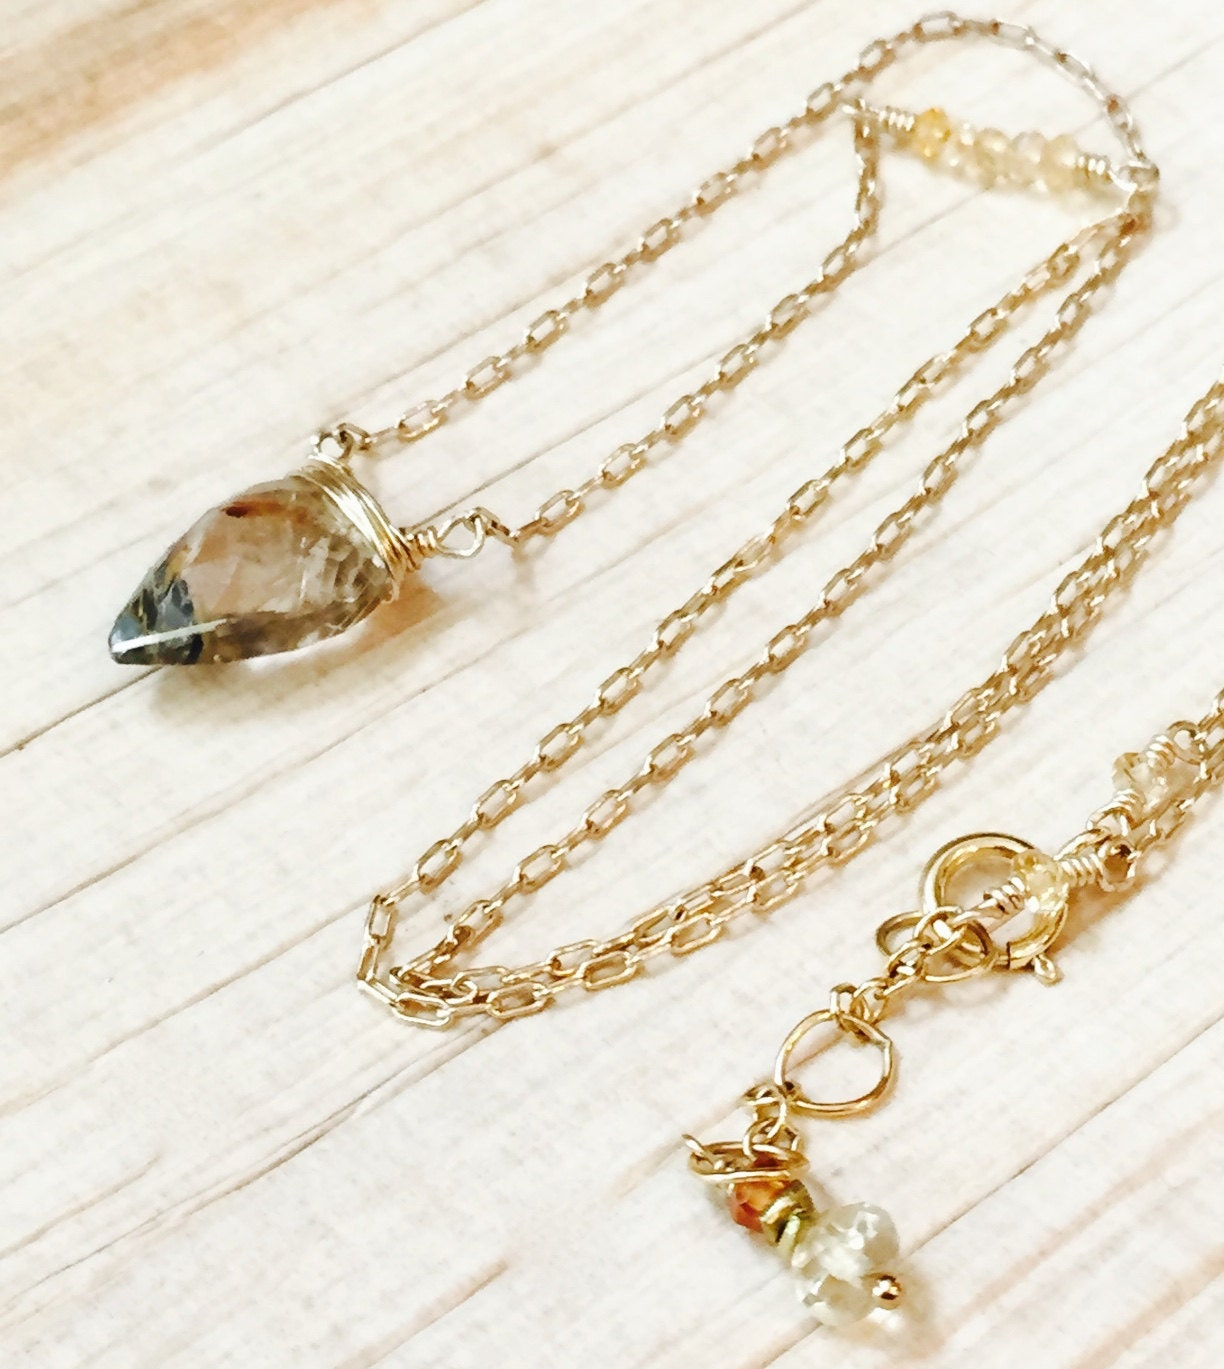 Golden Rutilated Quartz Jewelry Of Golden Rutilated Quartz Necklace Arrowhead Pendant